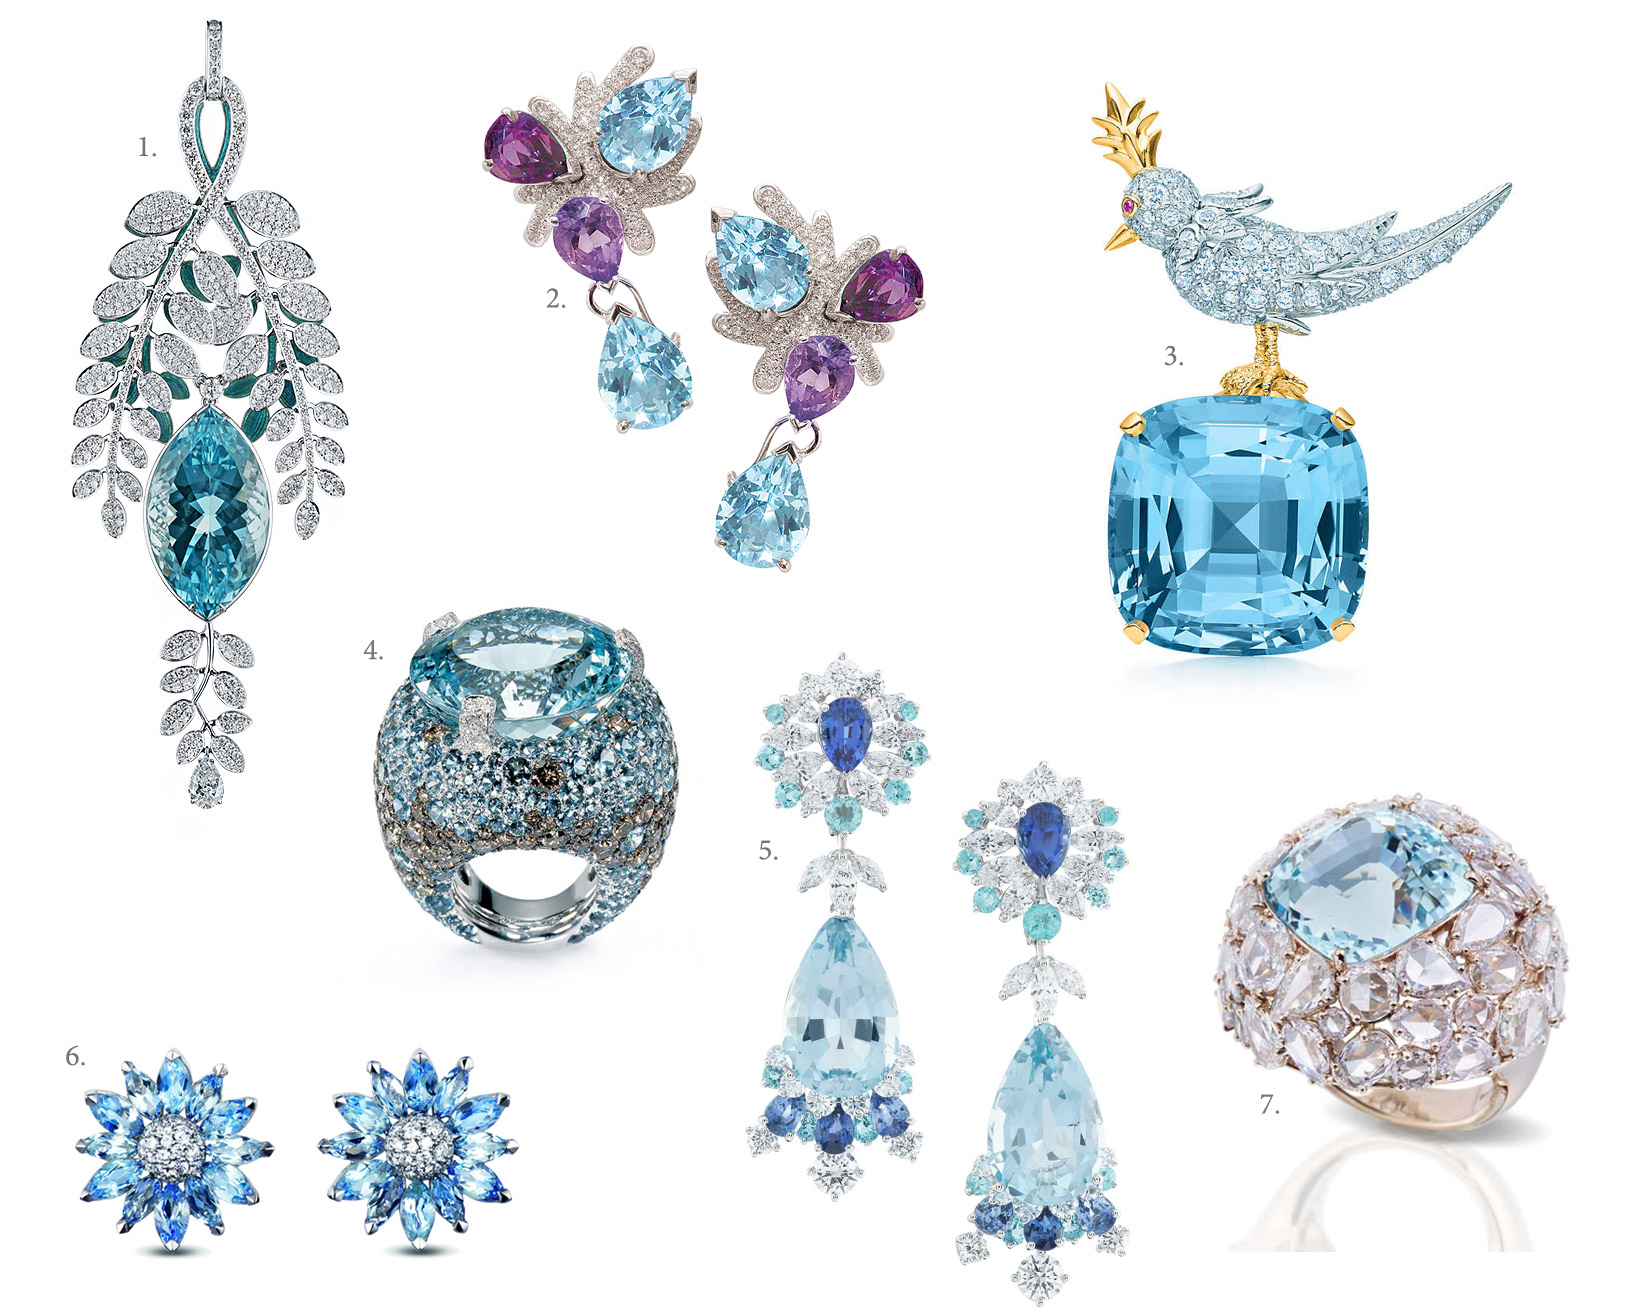 1. Ilgiz F. Aquamarine pendant with diamonds 2. Mathon Paris Coral earrings 3. Tiffany&Co Bird on a Rock clip with a 41.66 cts aquamarine 4. de Grisogono Melody of Colours Aquamarine ring 5. Van Cleef&Arpels Peau d'Âne collection aquamarine earrings 6. Asprey Daisy Heritage Aquamarine earrings 7. Pomellato Pom Pom ring